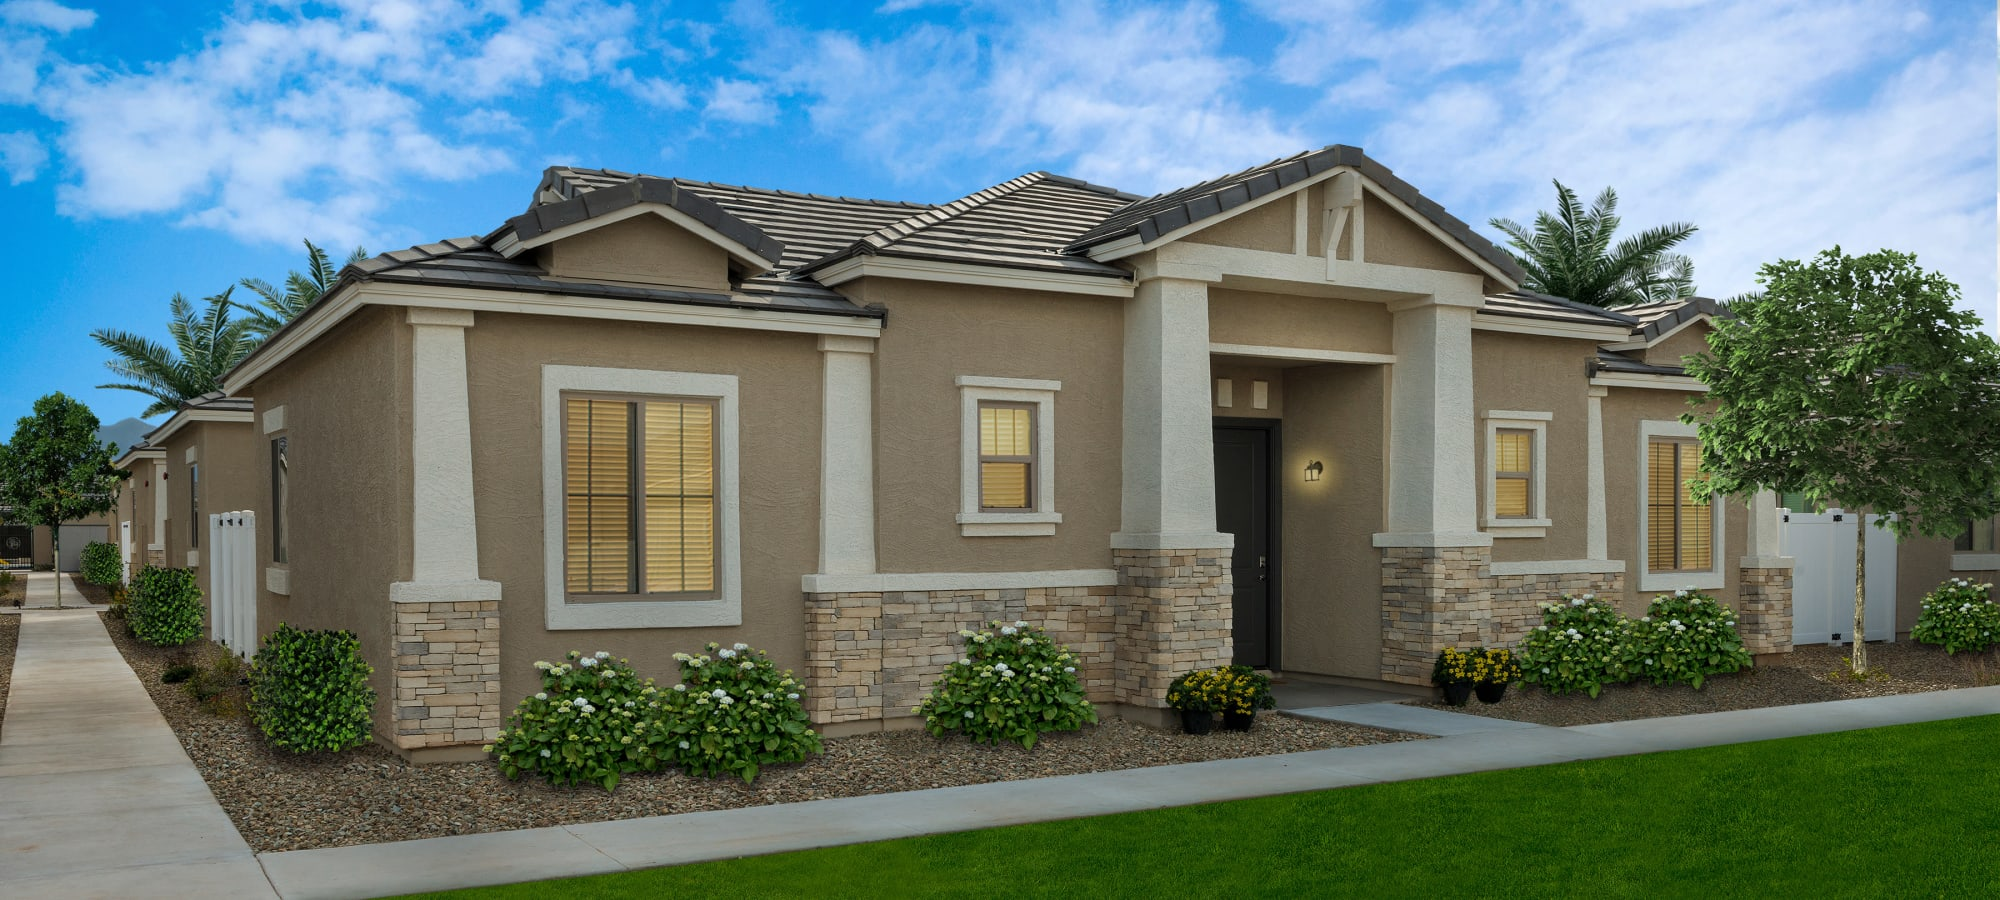 Exterior view of the beautiful apartment homes at {[location_name}} in Goodyear, Arizona